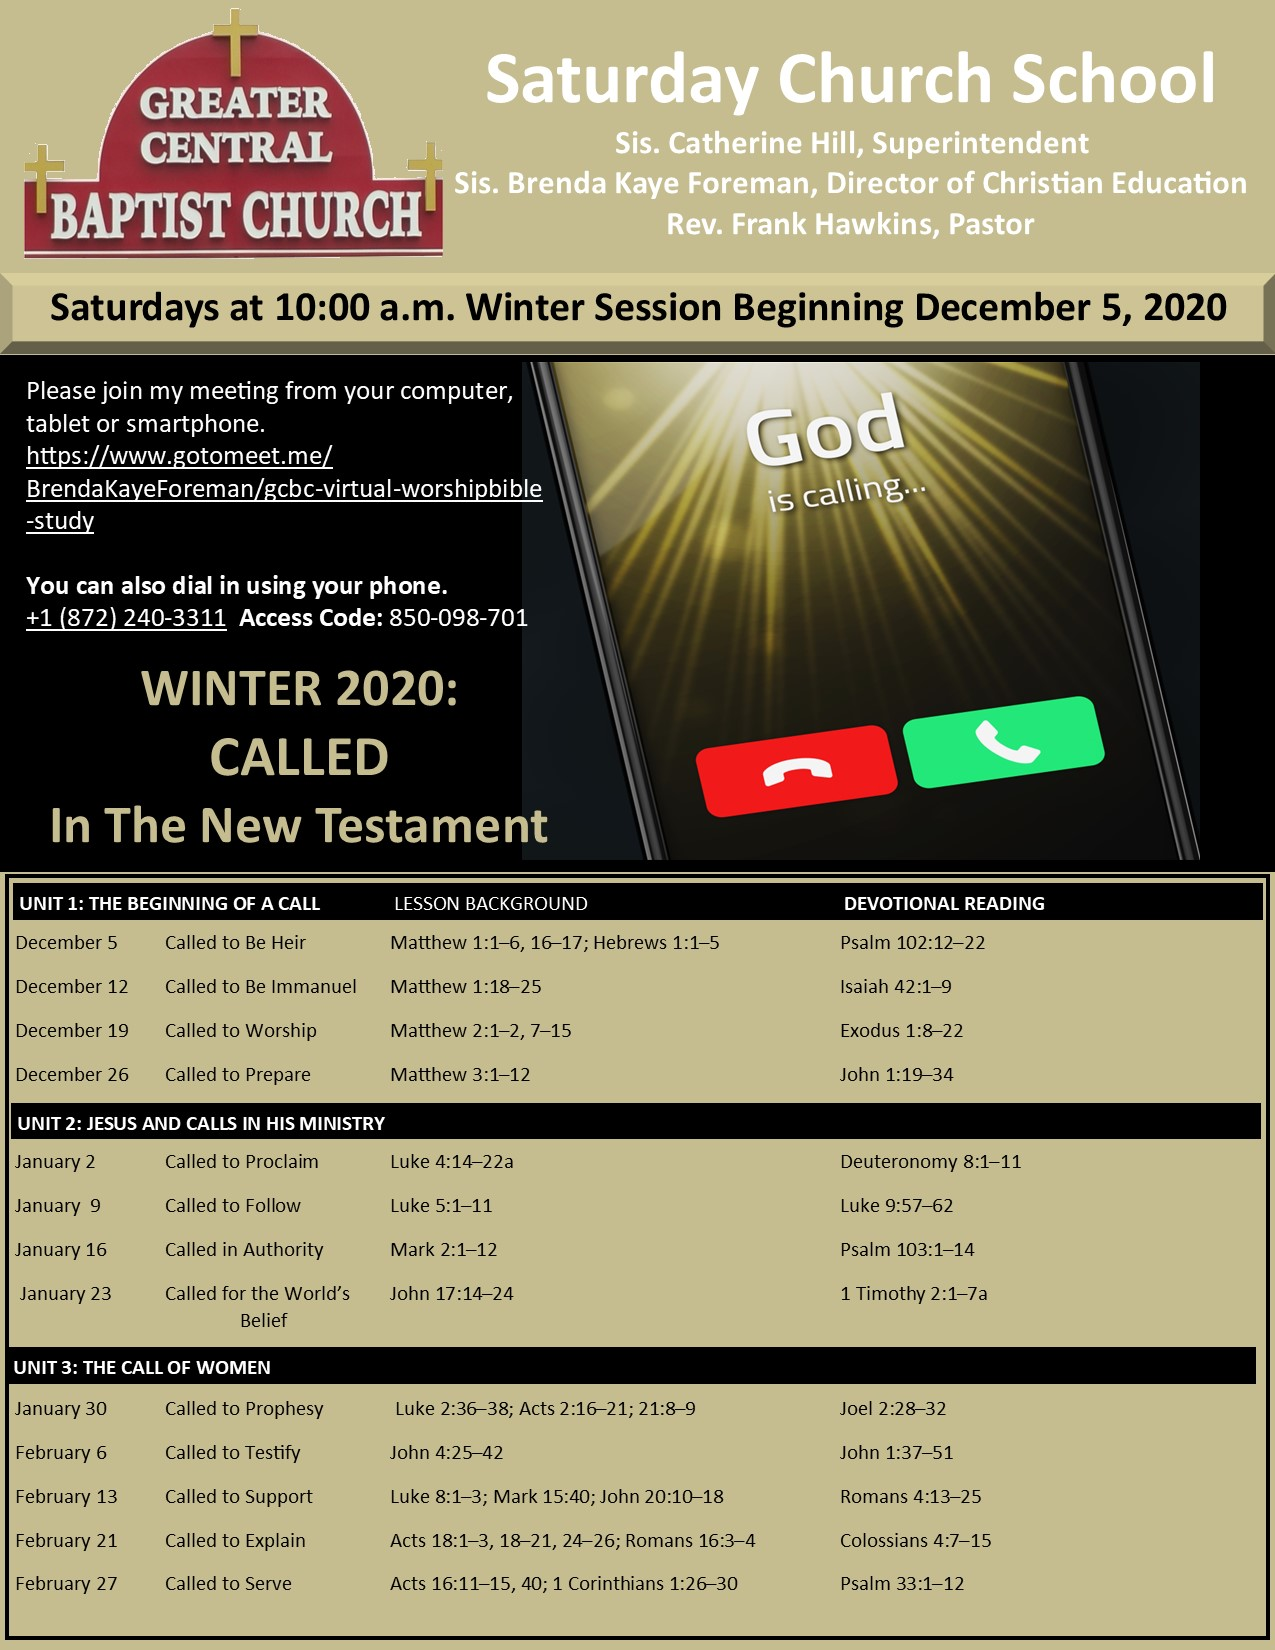 Saturday Church School Winter -Called In The New Testament